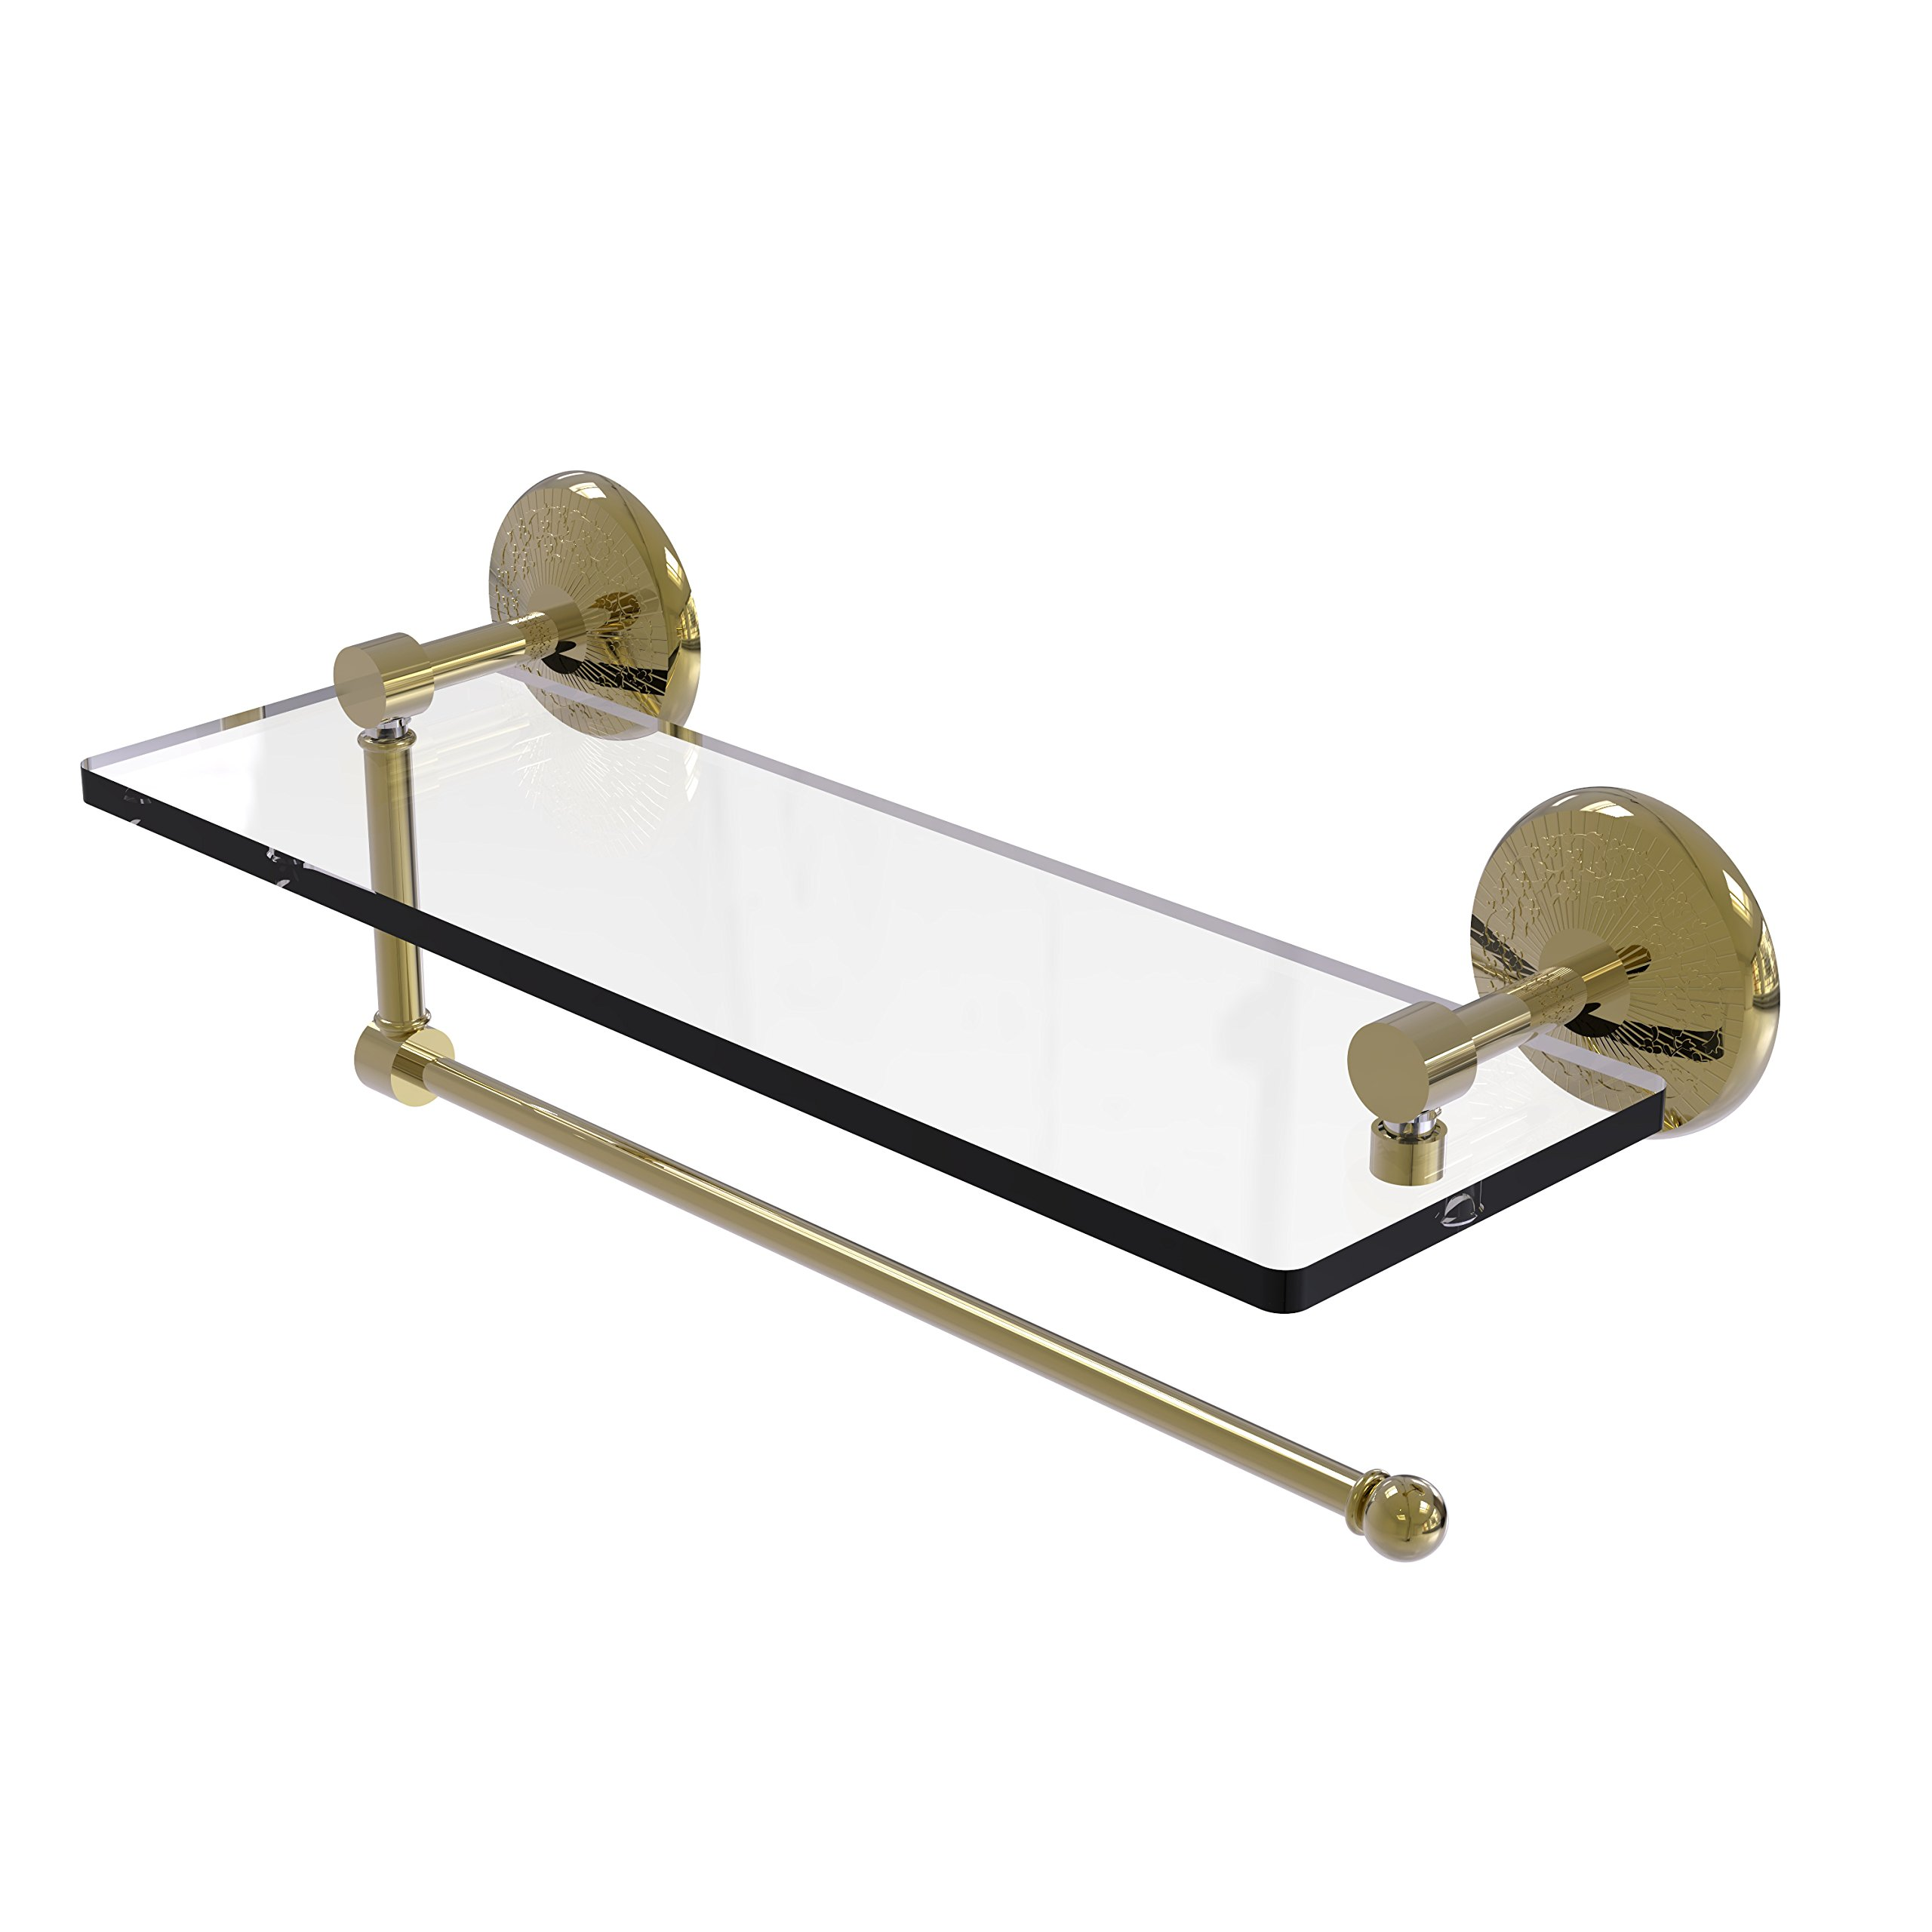 Allied Brass Prestige Monte Carlo Collection Paper Towel Holder with 16 Inch Glass Shelf PMC-1PT/16 - Unlacquered Brass